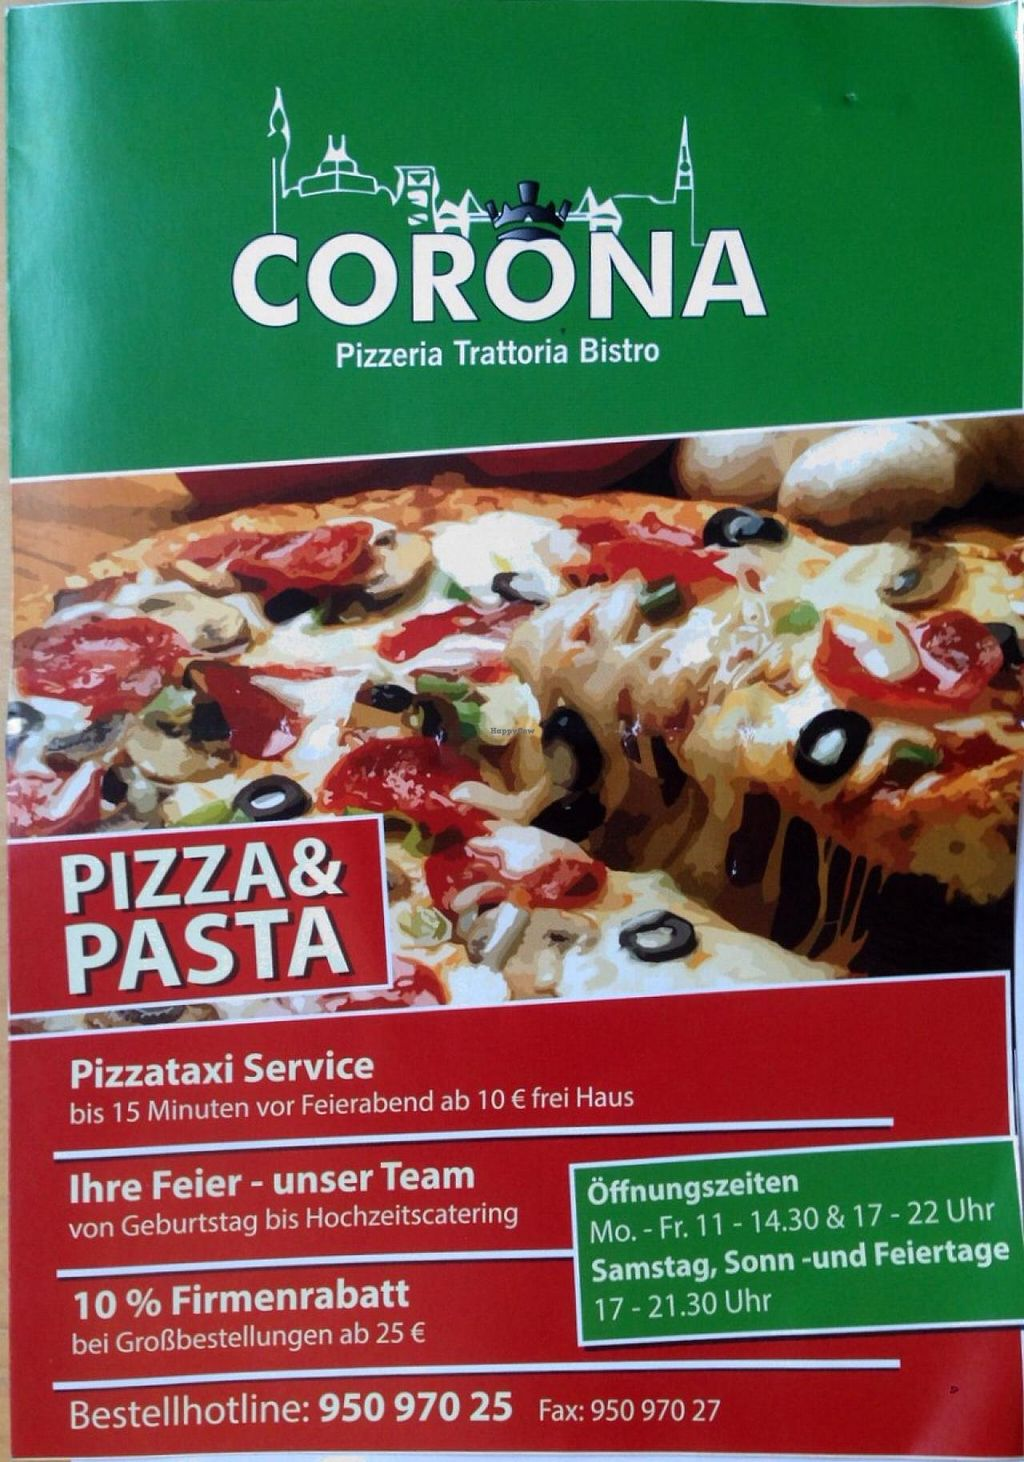 """Photo of Corona Pizzeria and Trattoria  by <a href=""""/members/profile/Abgas"""">Abgas</a> <br/>Menu - page 1 <br/> January 6, 2014  - <a href='/contact/abuse/image/43698/61886'>Report</a>"""